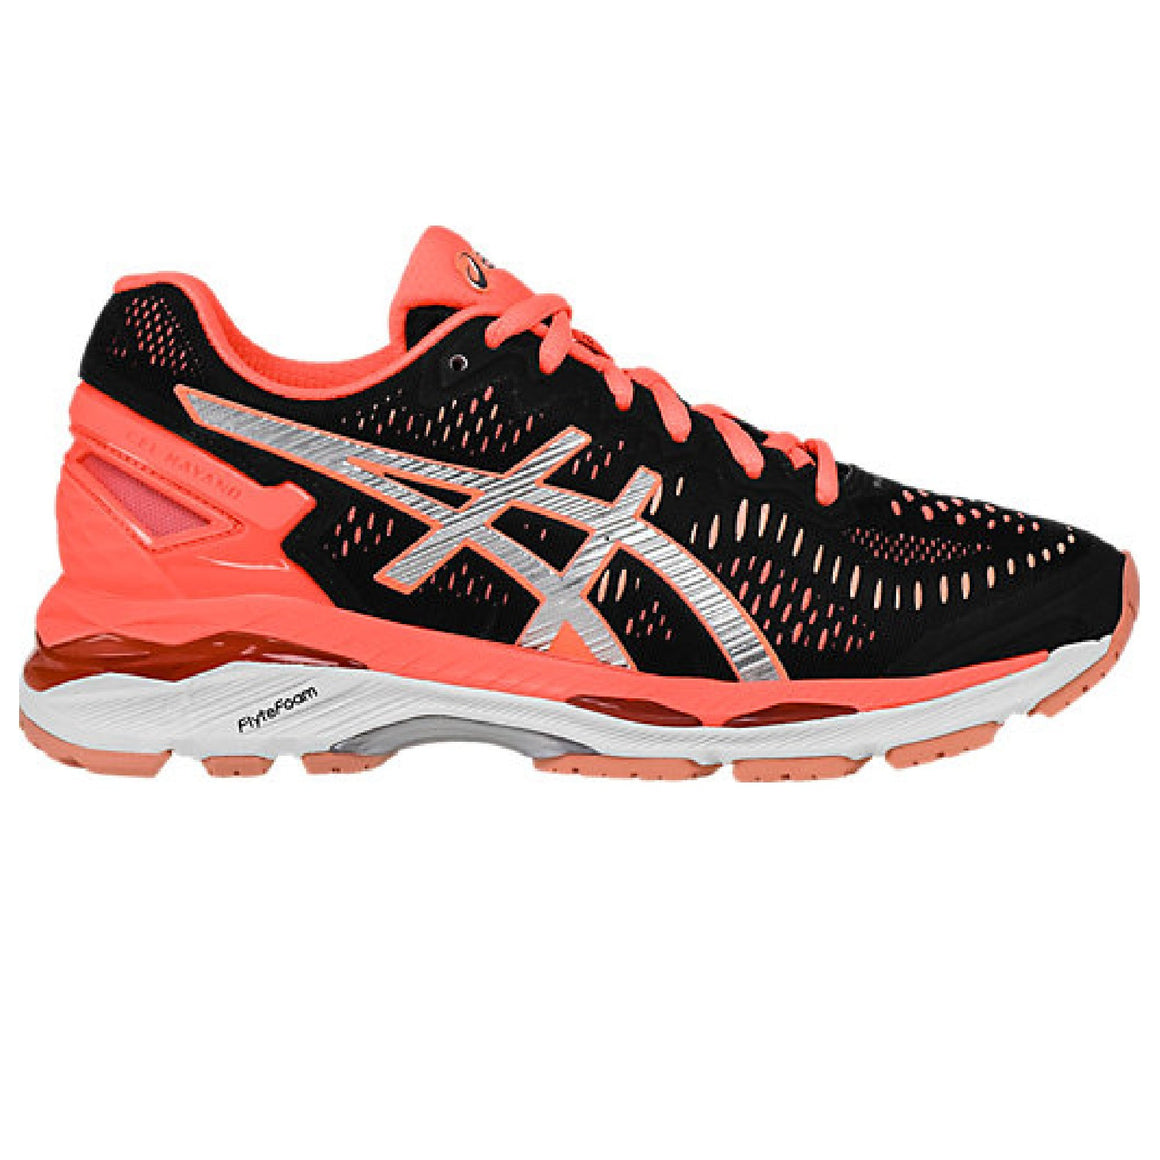 Ladies Asics Gel Kayano 23